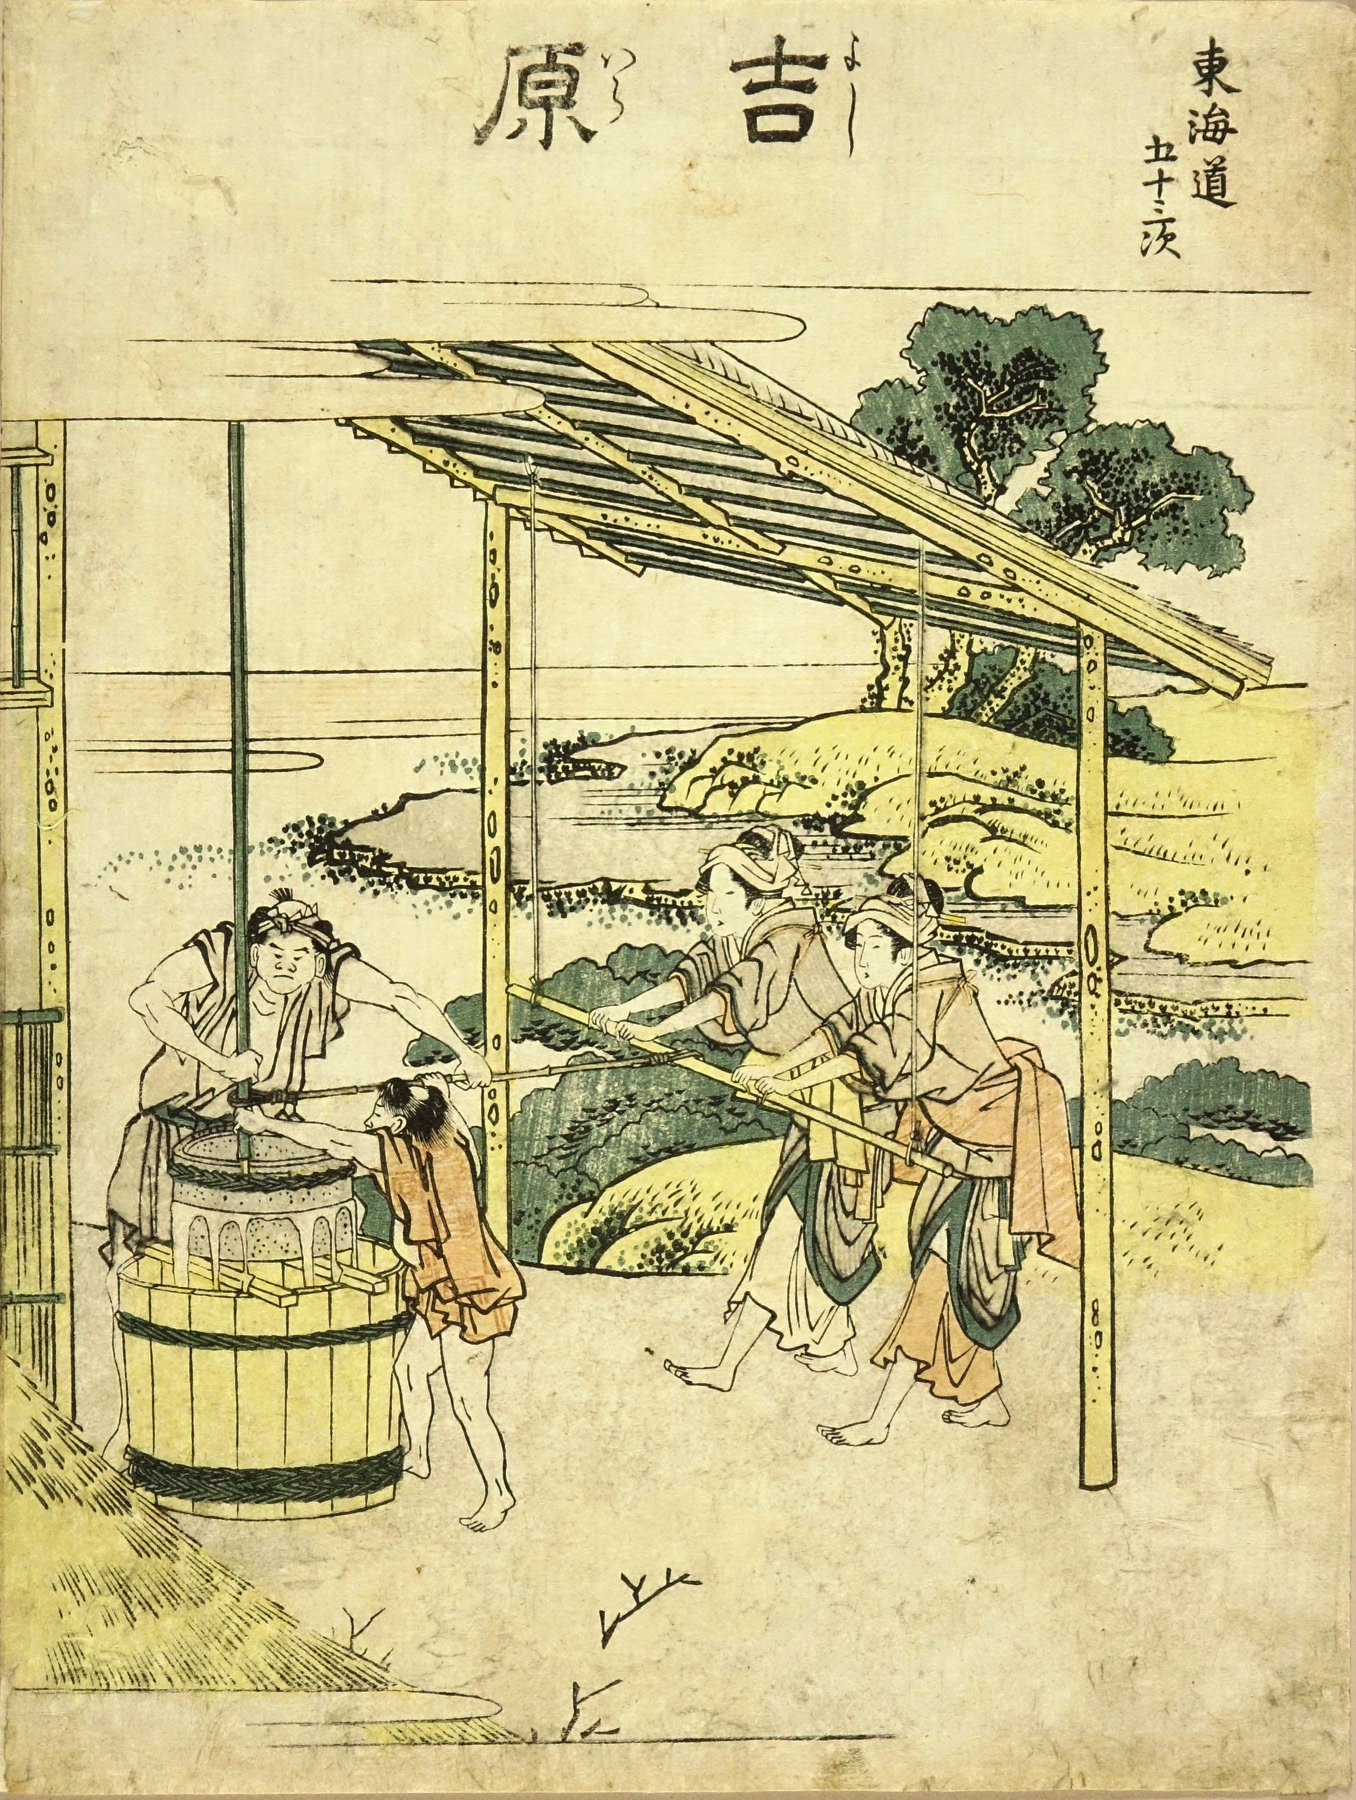 HOKUSAI Yoshiwara, from <i>Tokaido gojusan tsugi</i> (The fifty-three stations of the Tokaido)